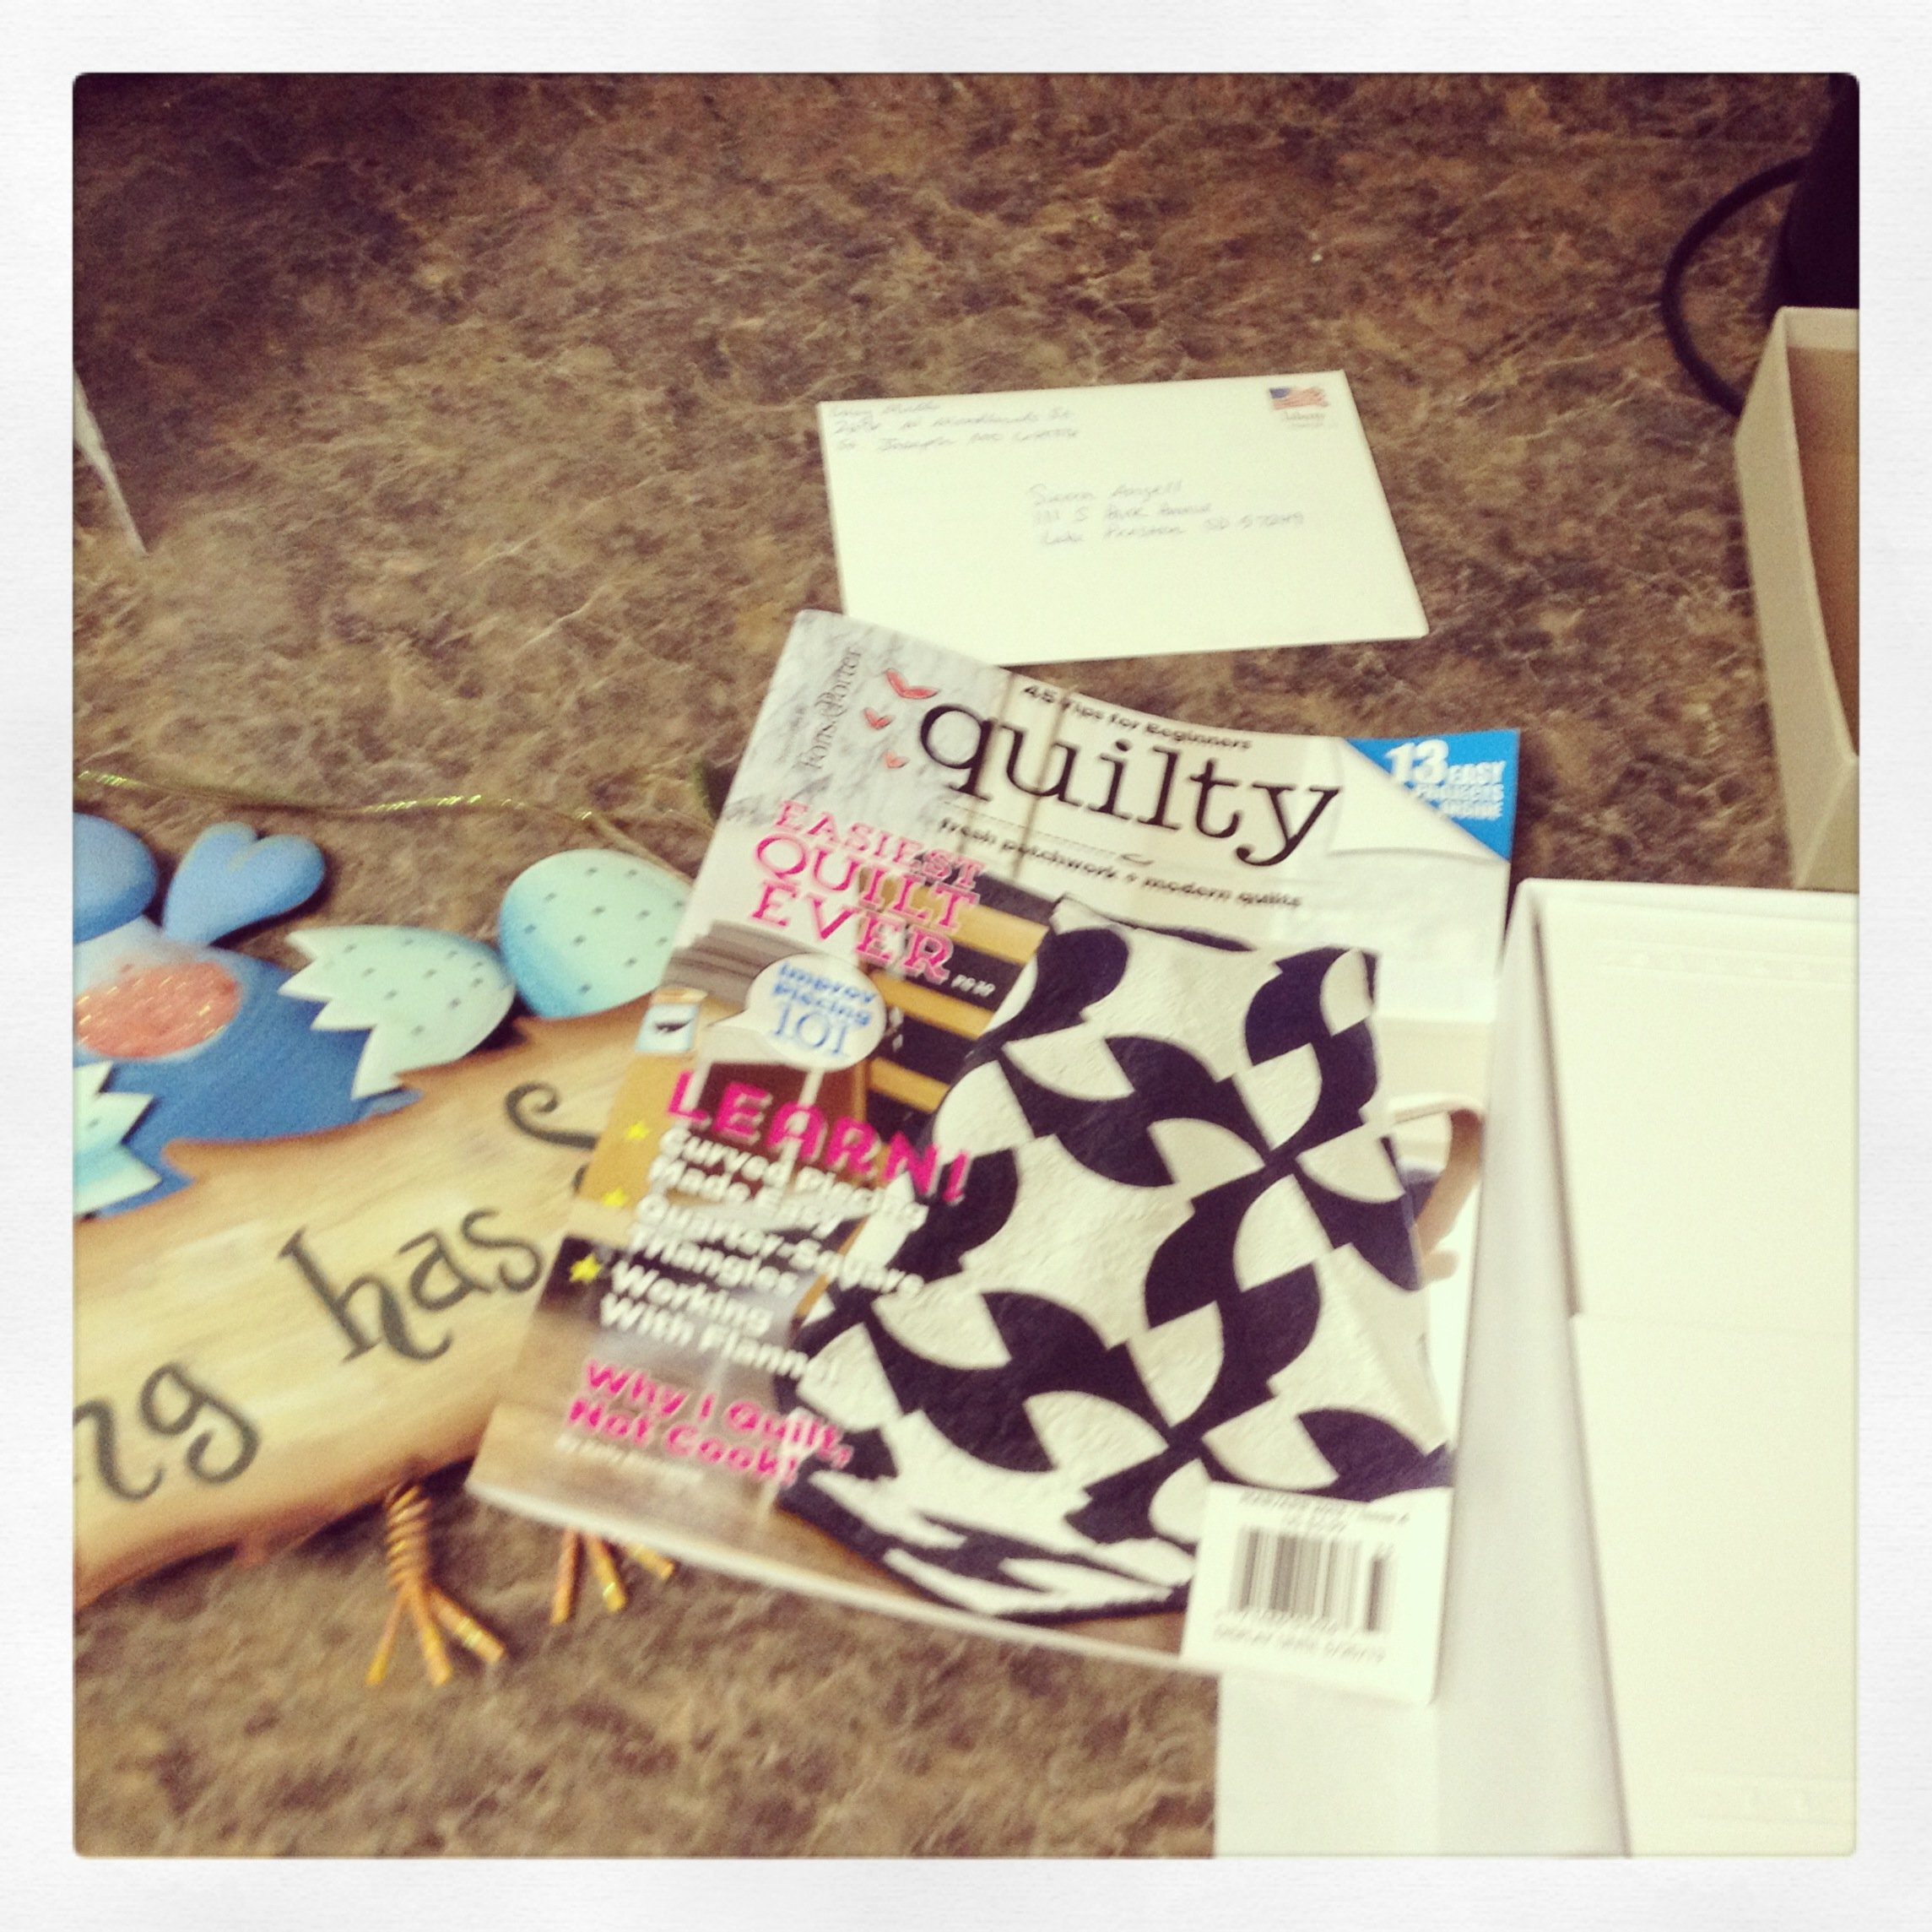 Packages from Missouri: Quilty Magazine, Spring Sign, Stationary